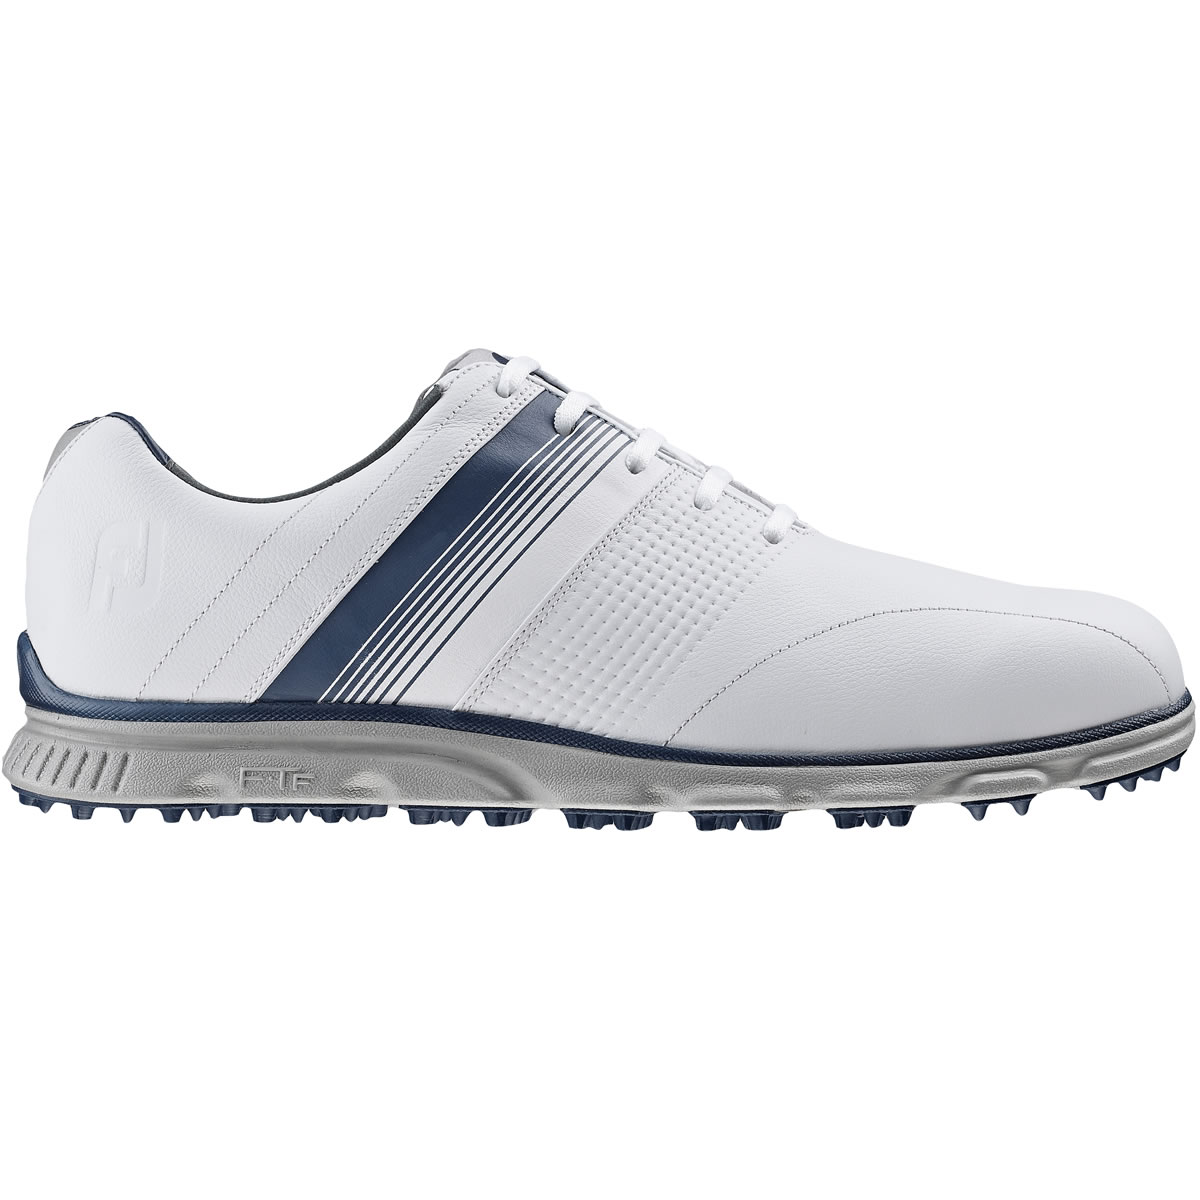 footjoy dryjoys casual golf shoes 53688 white navy